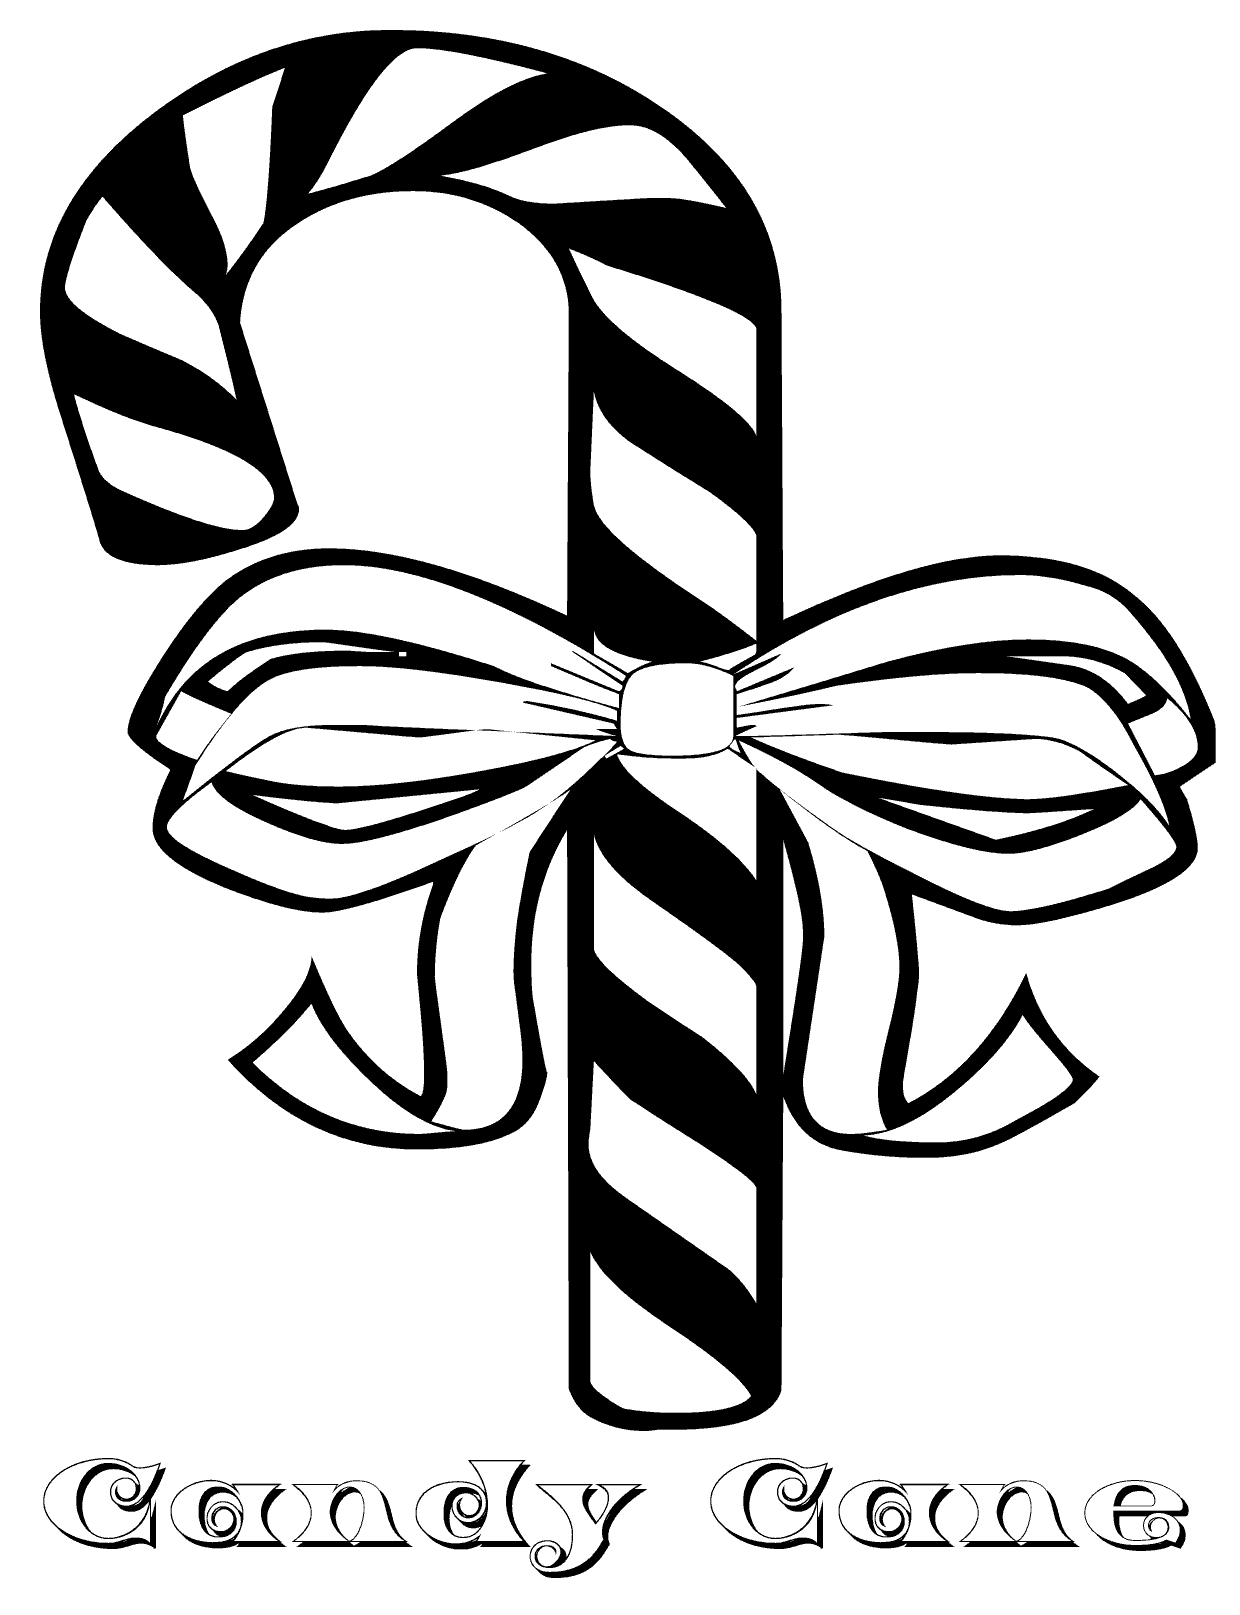 Candy Cane Coloring Pages Free Printable Candy Cane Coloring